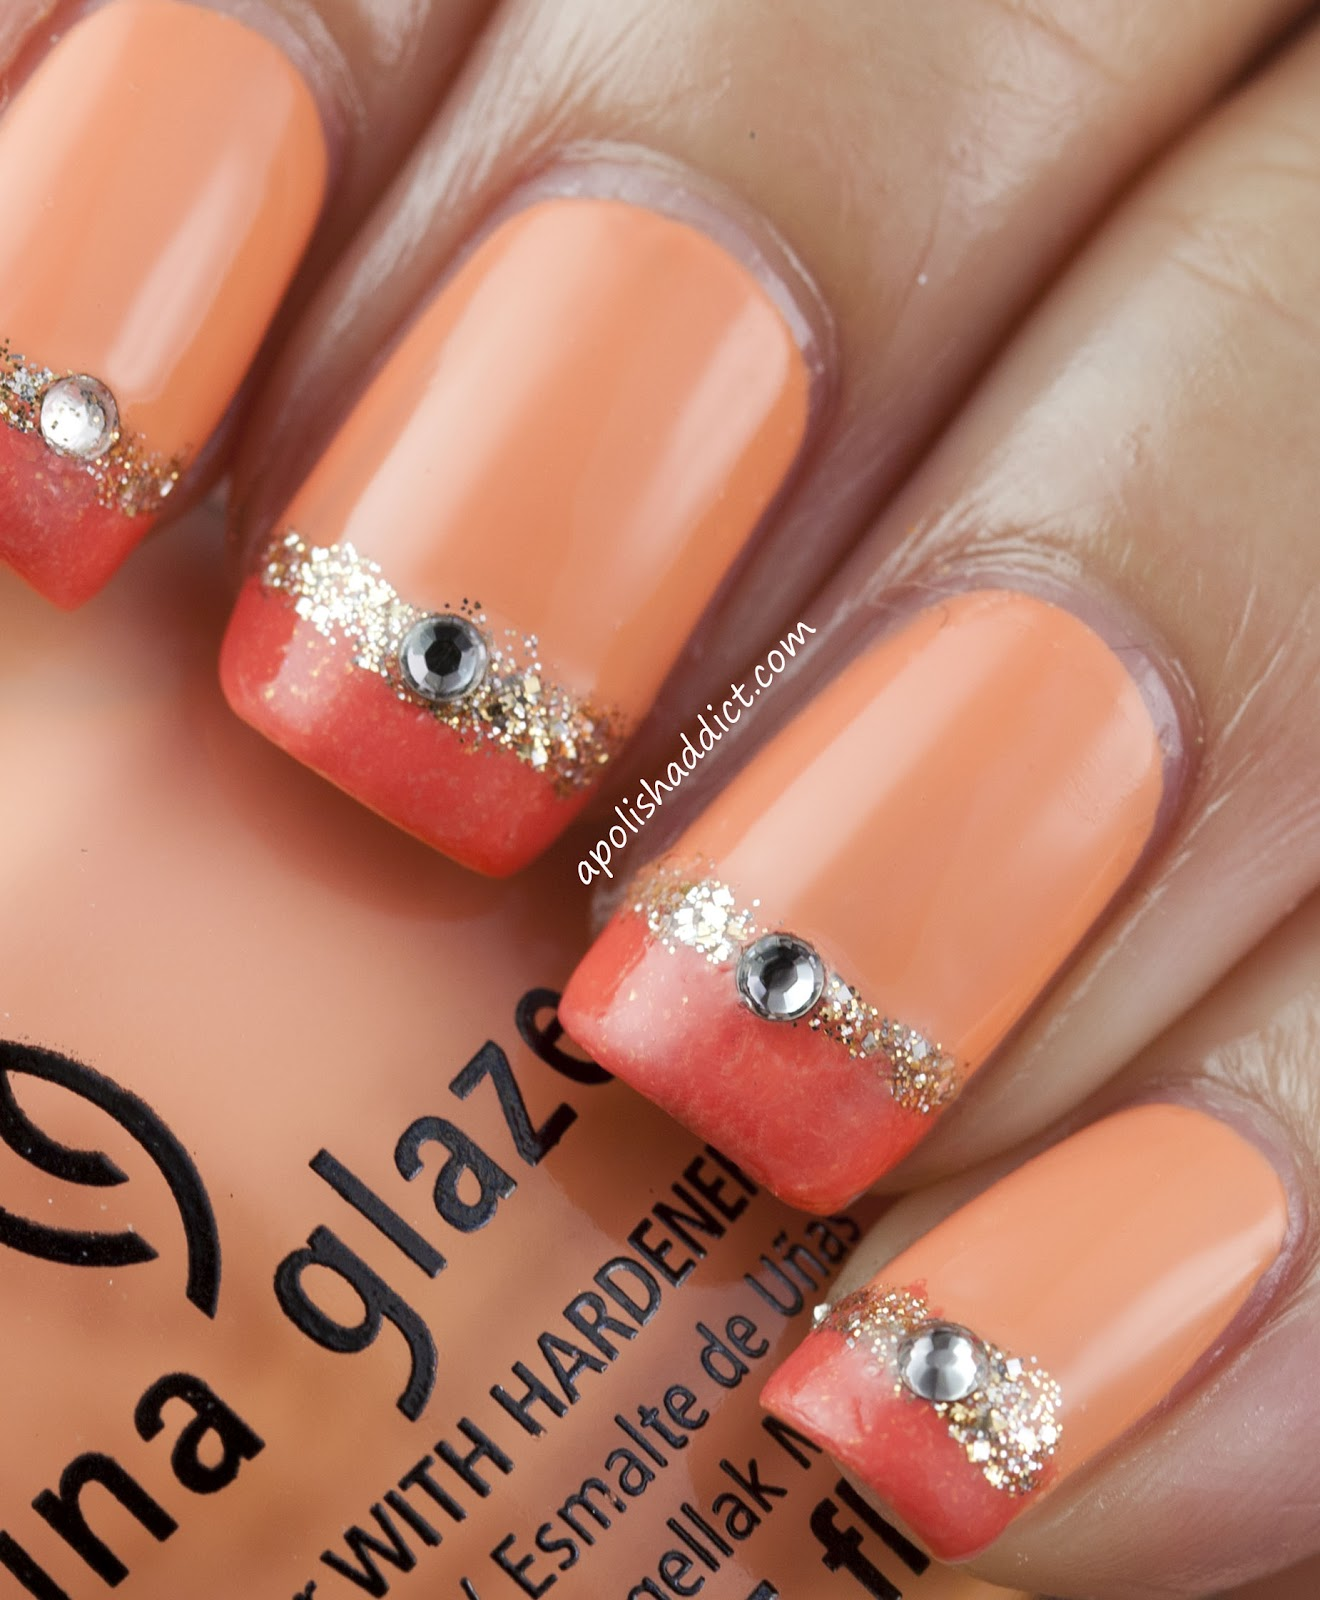 collectionphotos 2017: easy nail art designs pictures 2013 ...